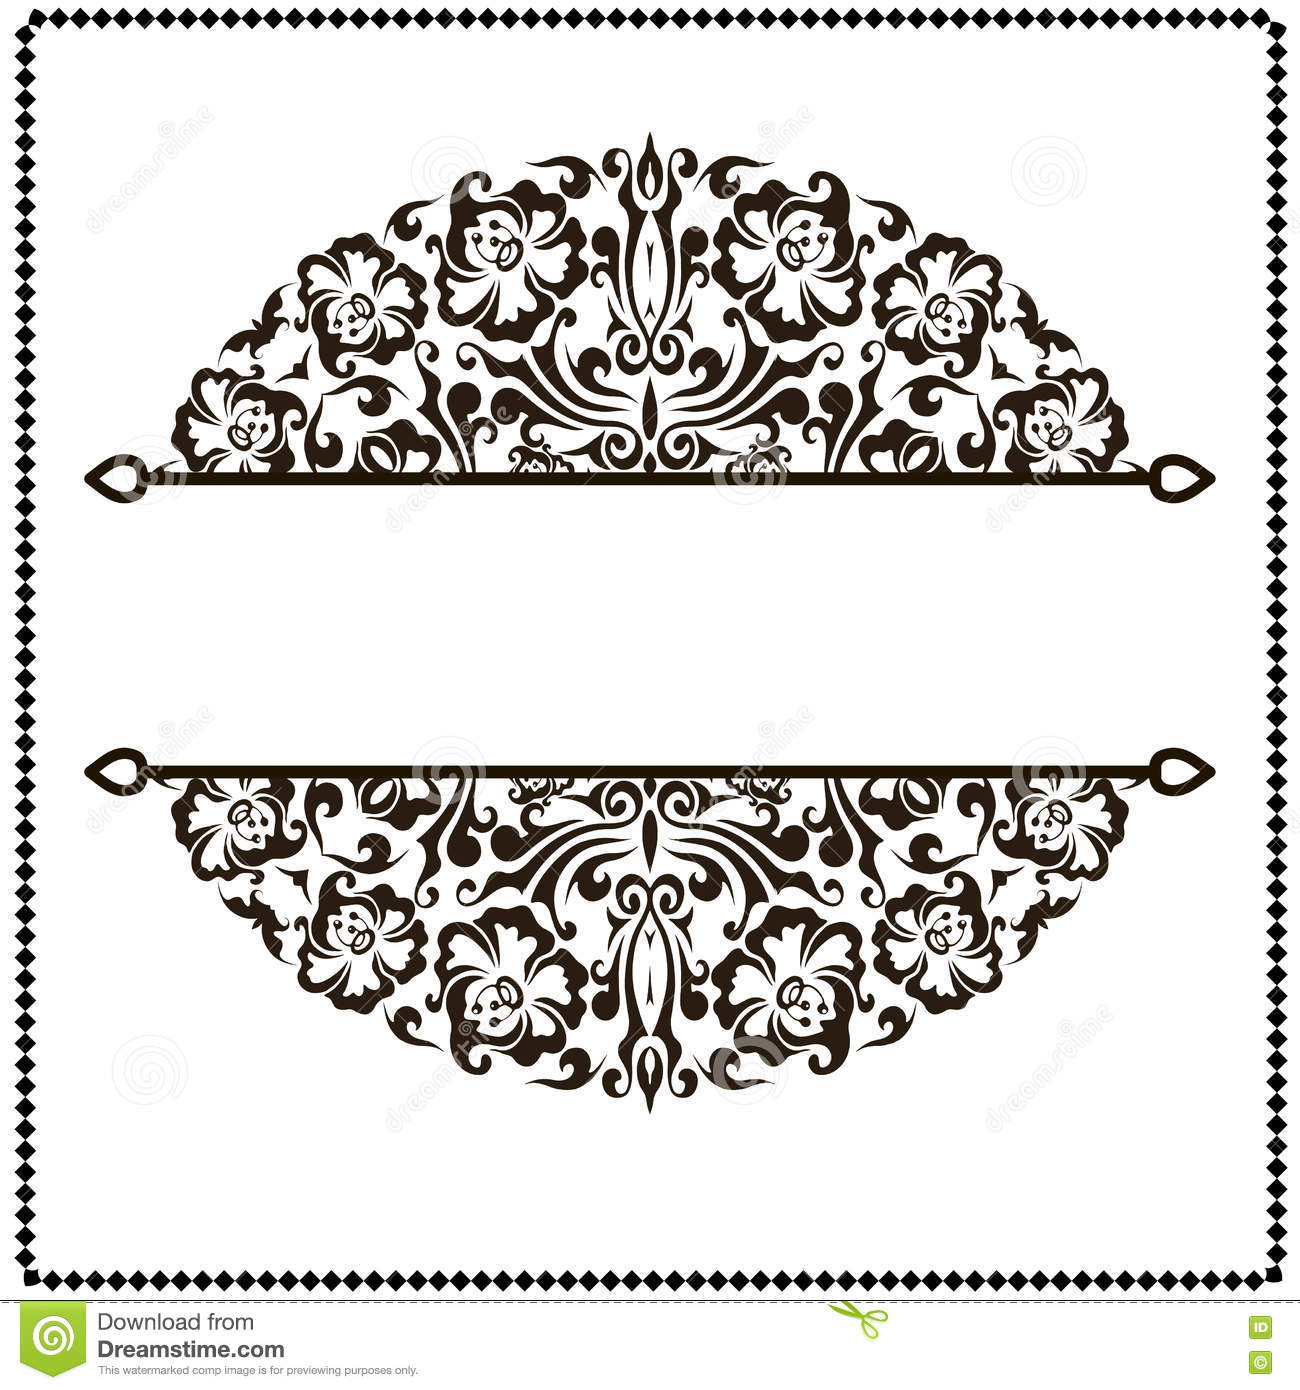 Black And White Border Frame With Floral Patterns Stock ...